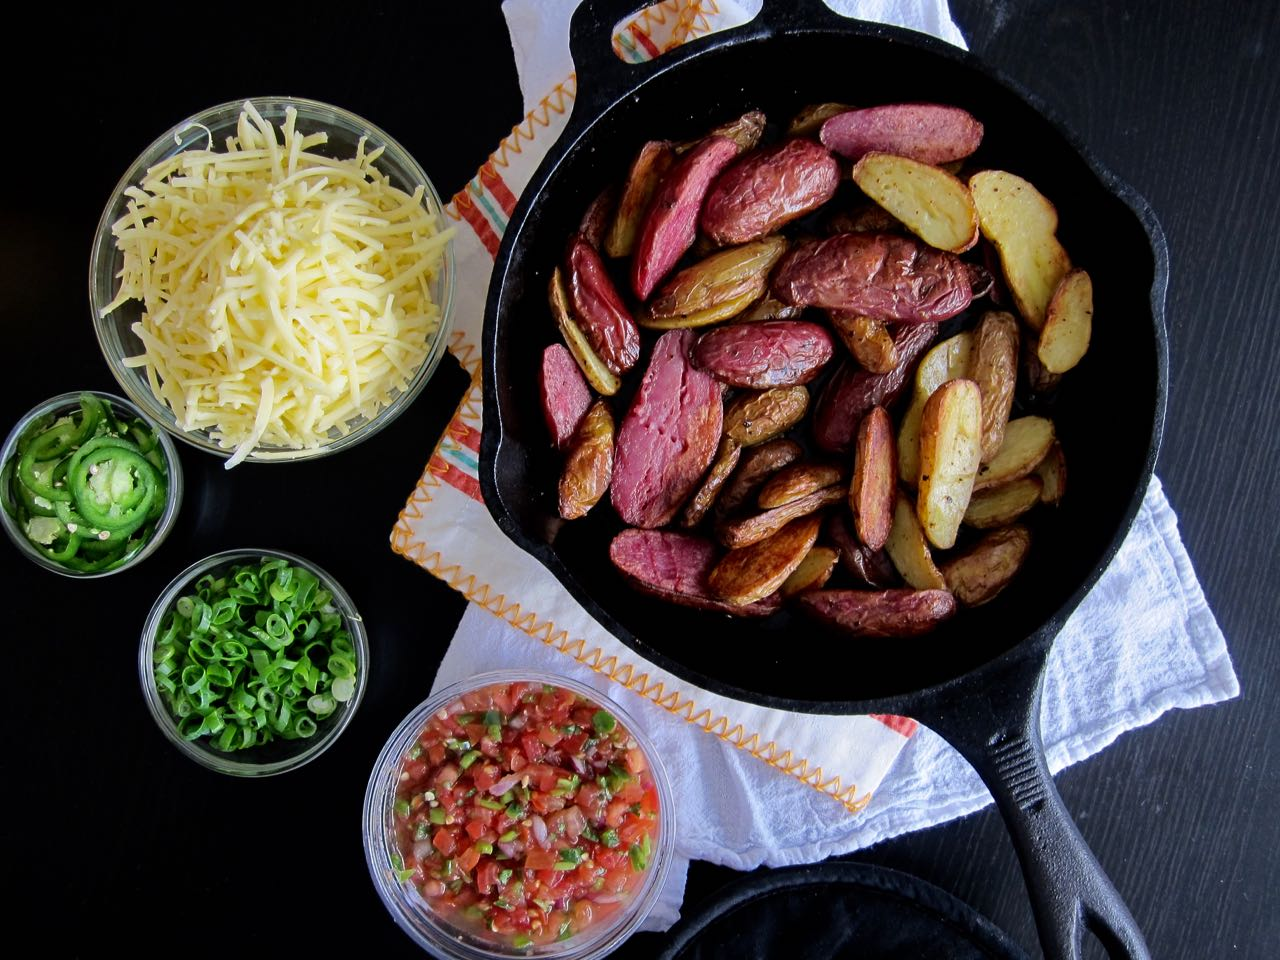 Oven Roasted Potatoes and Nacho Toppings